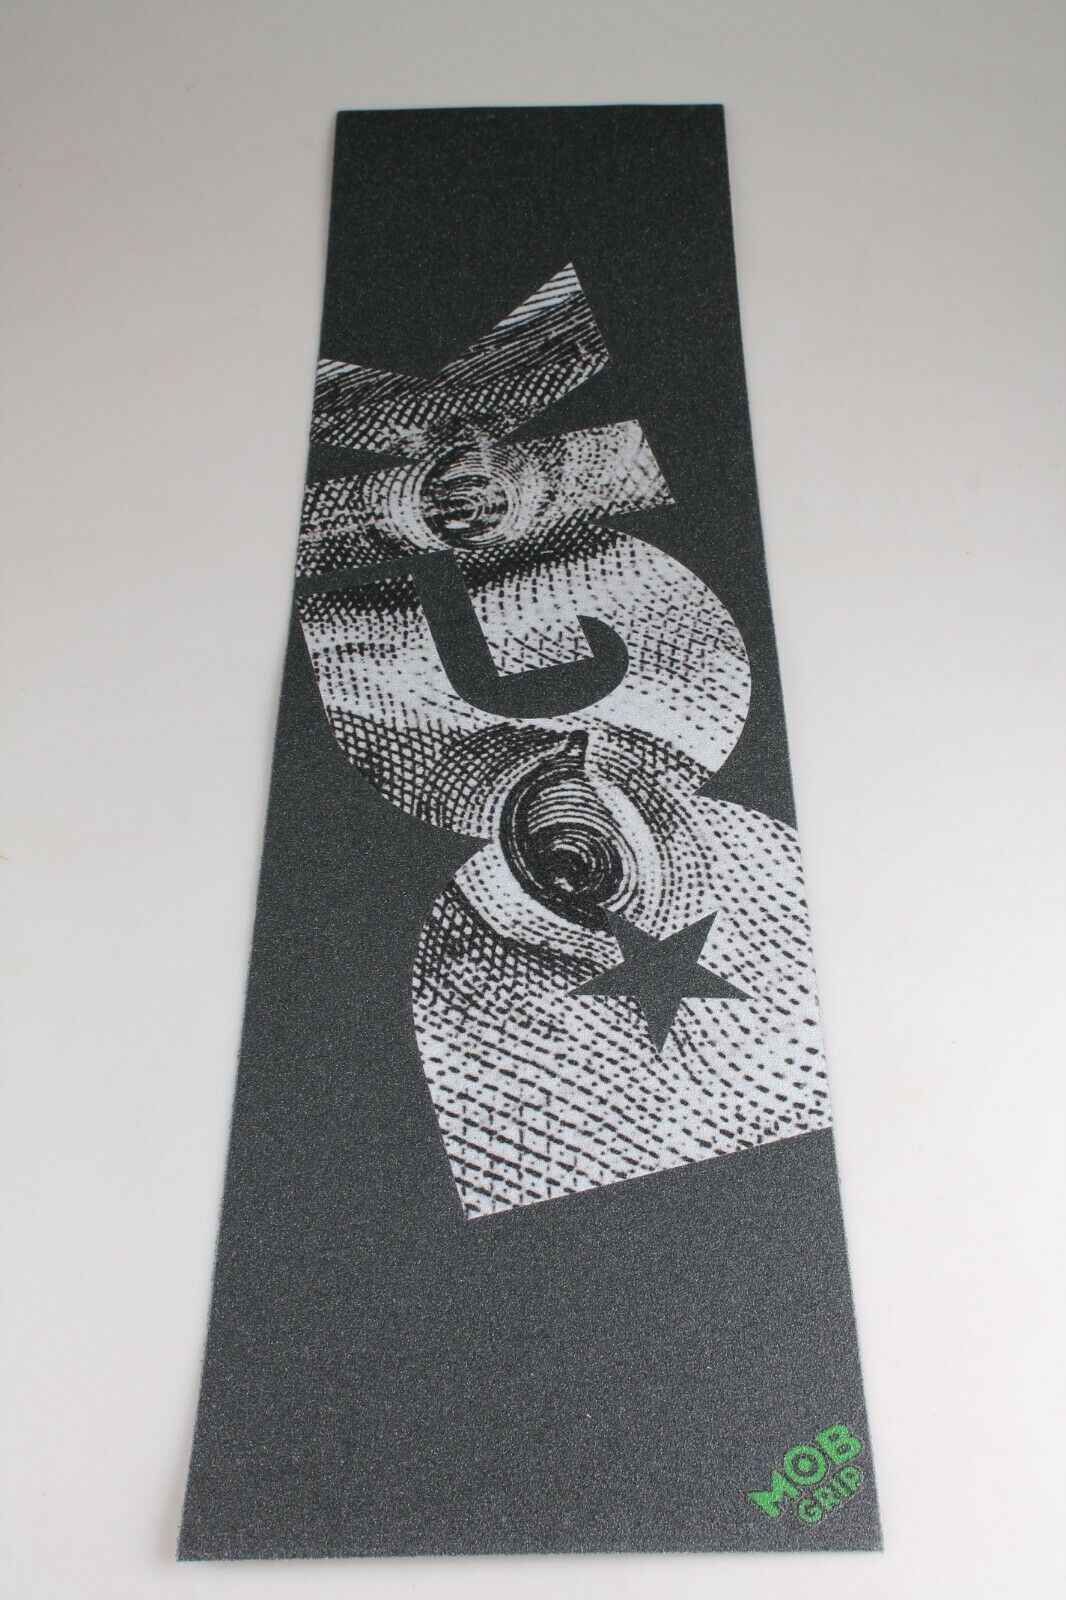 Dirty Ghetto Kids DGK EYES Grip Tape 9in x 33in Bg/5 Graphic MOB NEW